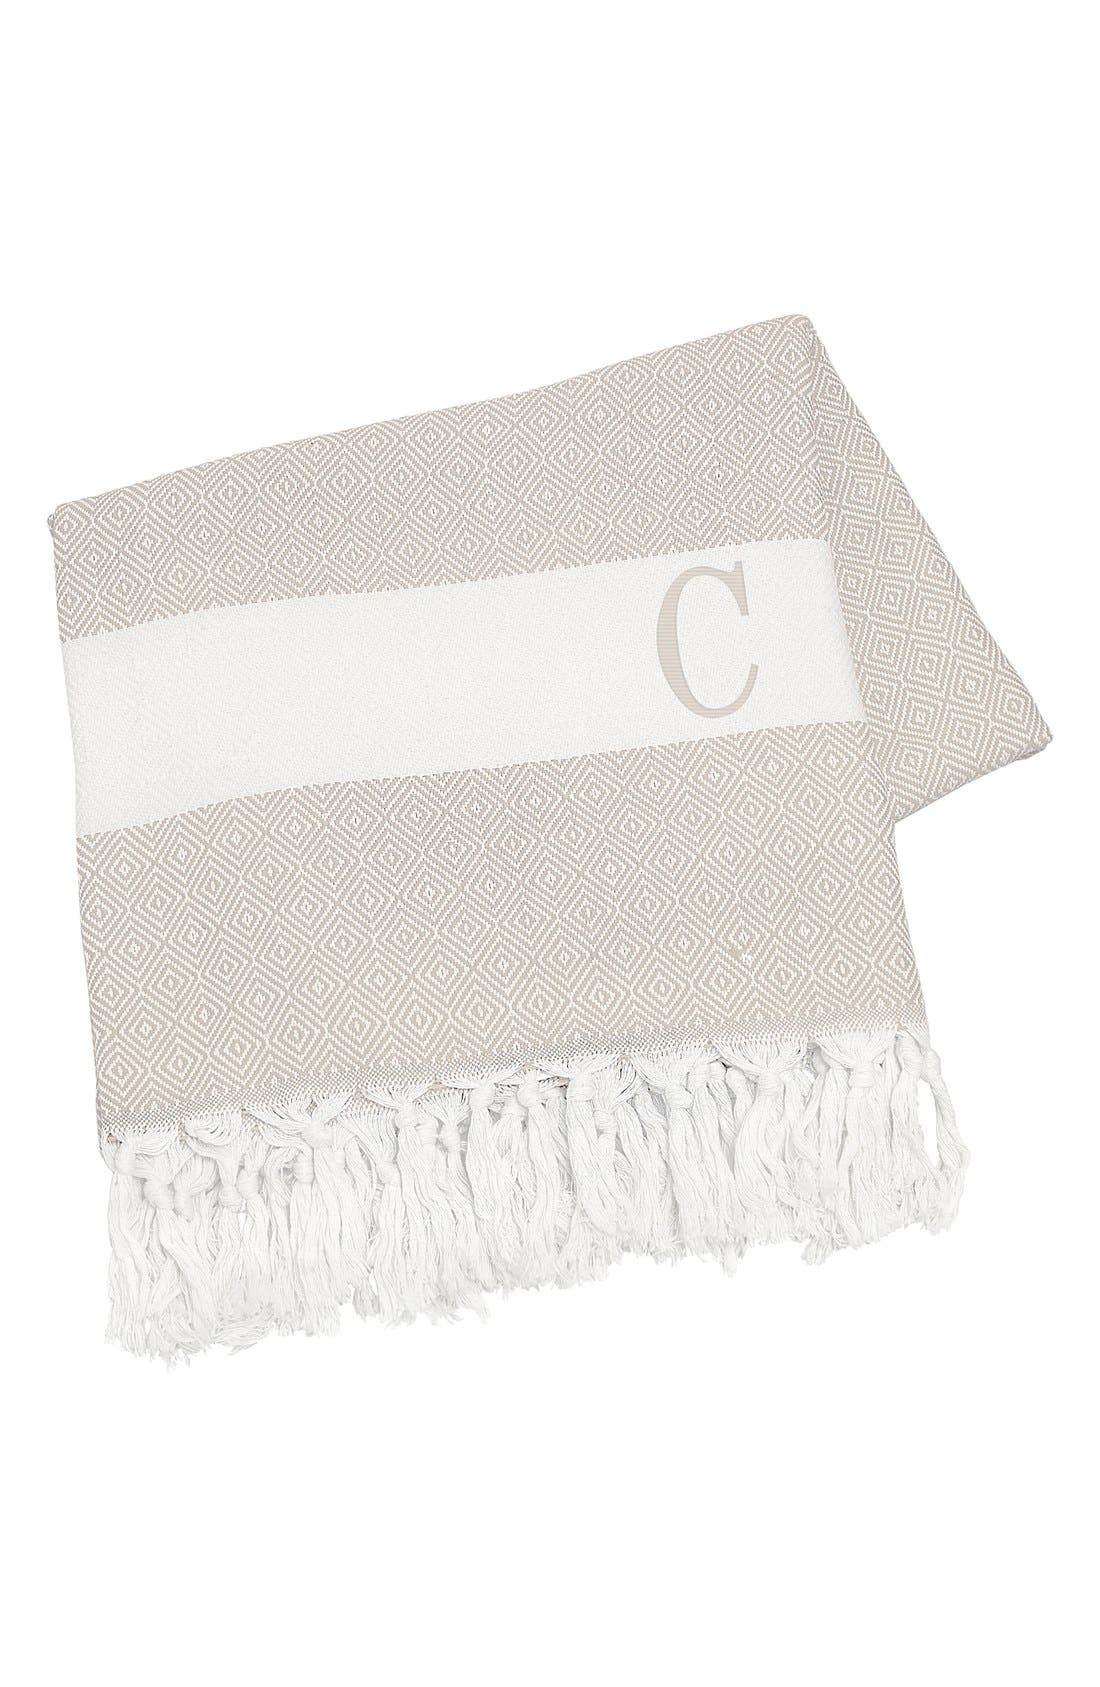 Monogram Turkish Cotton Throw,                         Main,                         color, 253